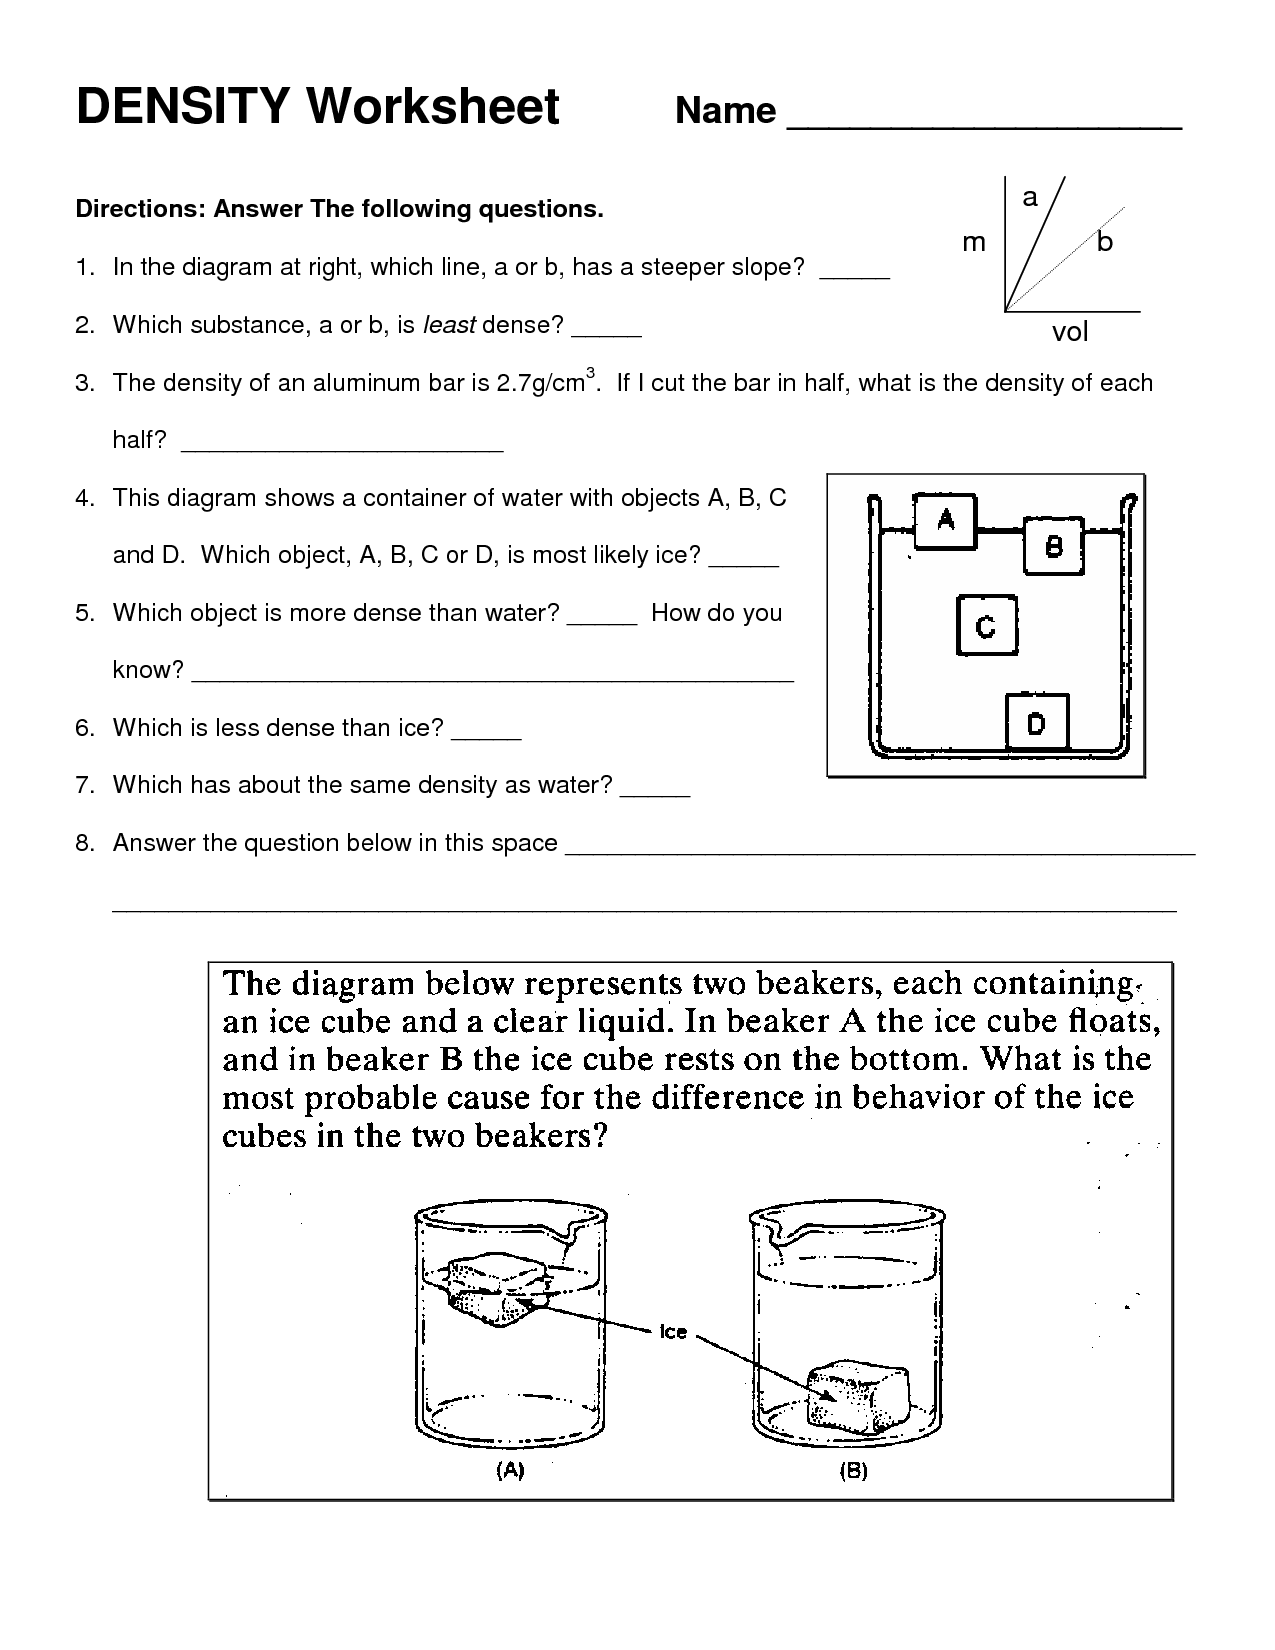 Density Worksheet Middle School